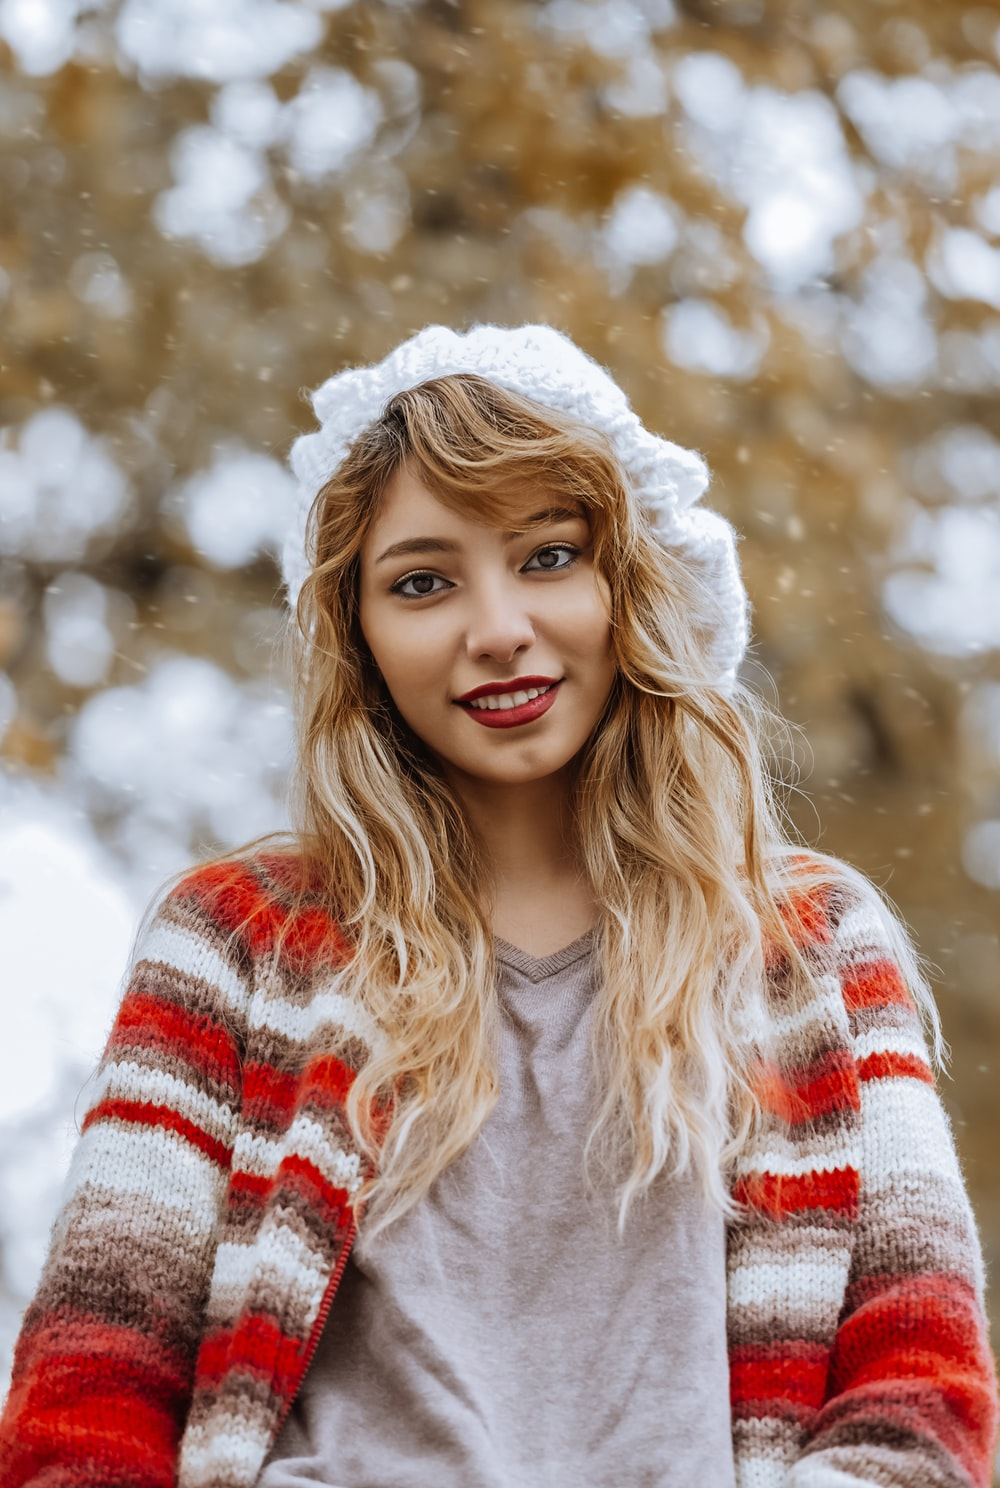 500 Girl Nature Pictures Hq Download Free Images Stock Photos On Unsplash